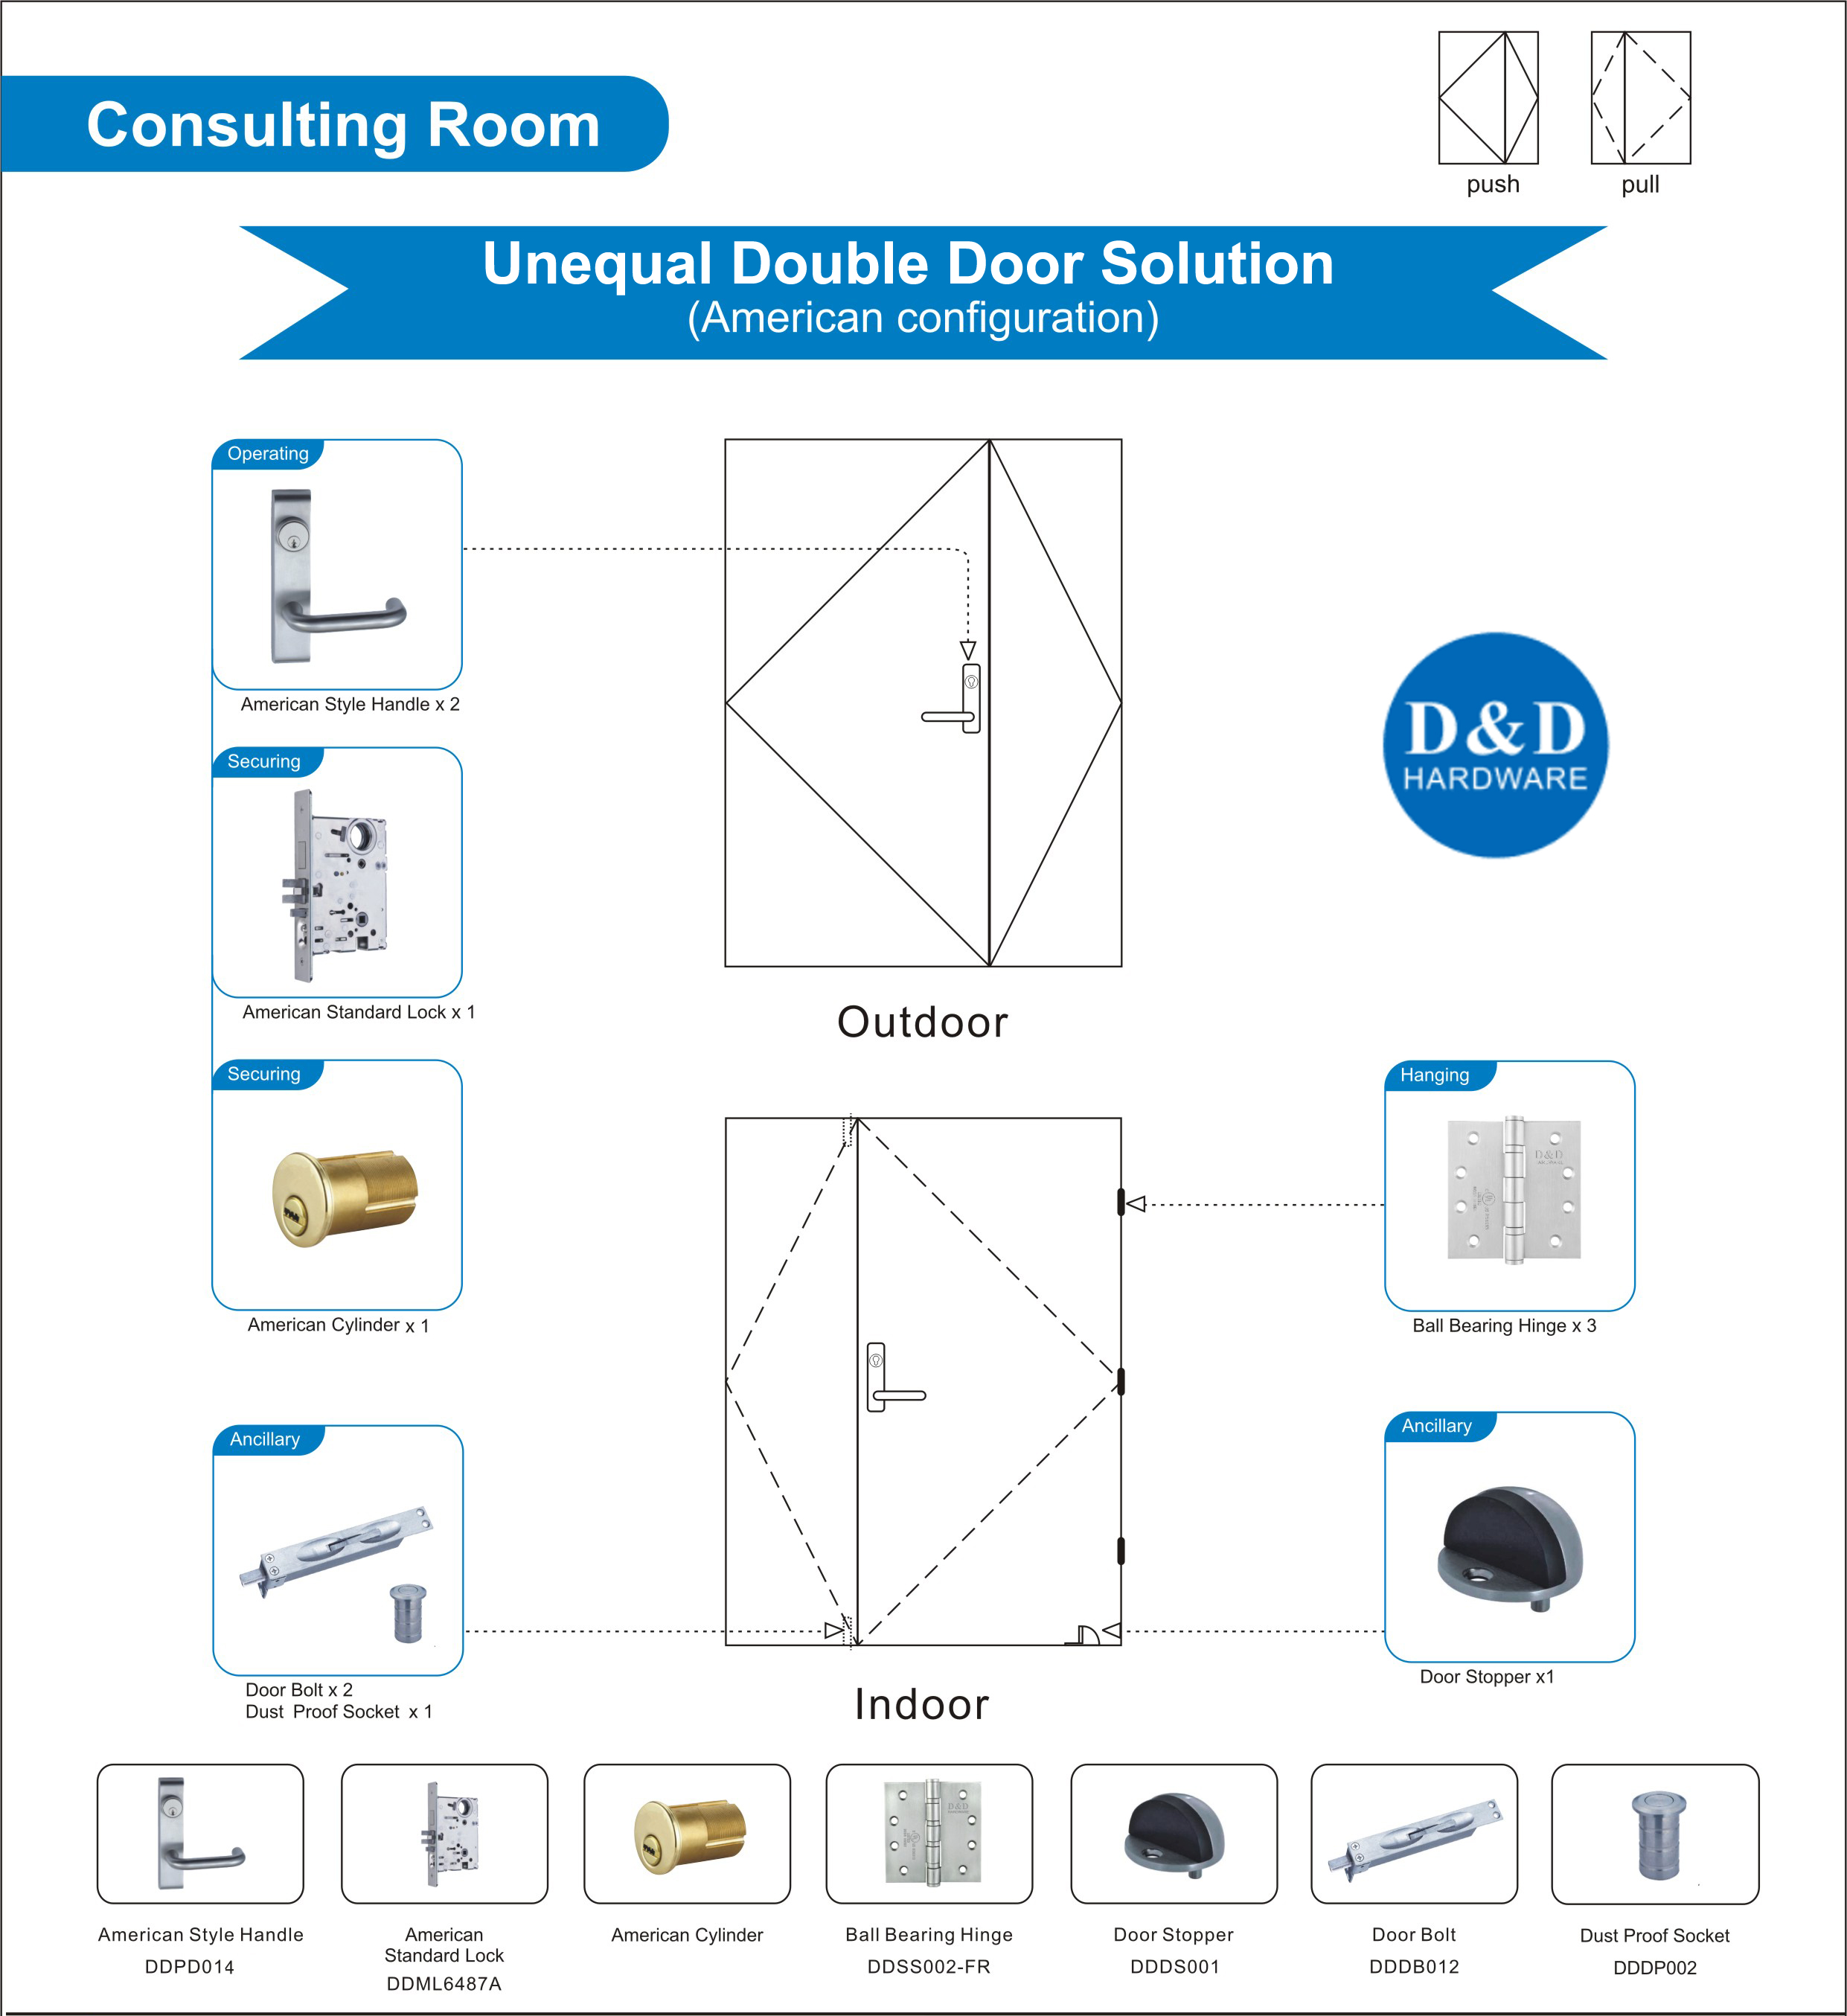 Building Hardware Solution for Consulting Room Unequal Double Door